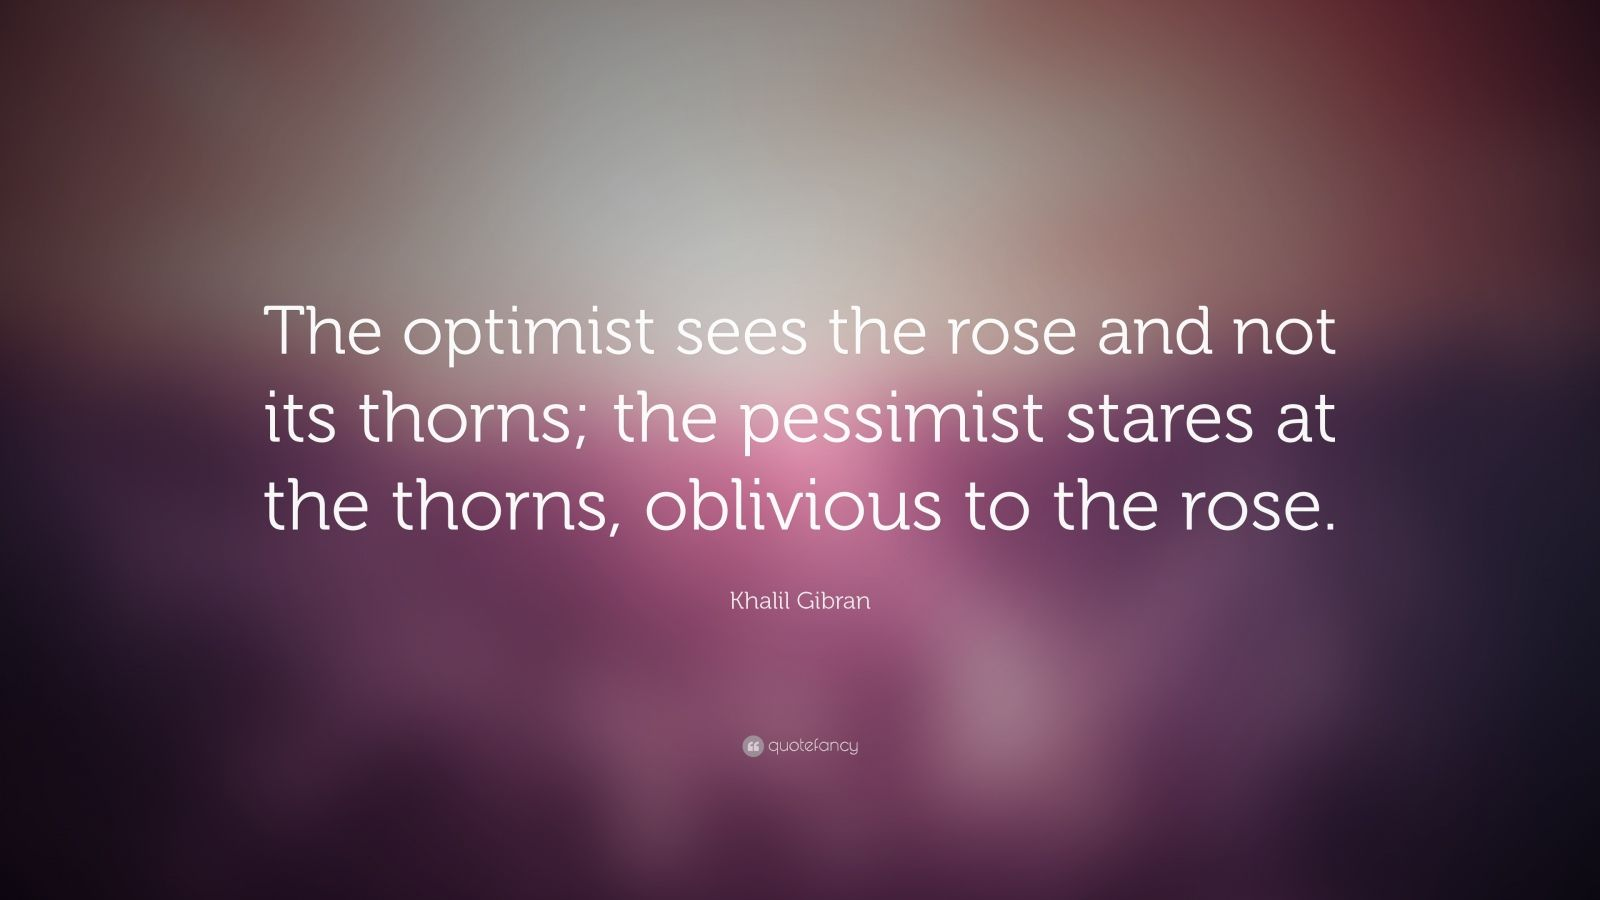 Best Love Wallpaper With Lovely Quotes Khalil Gibran Quote The Optimist Sees The Rose And Not